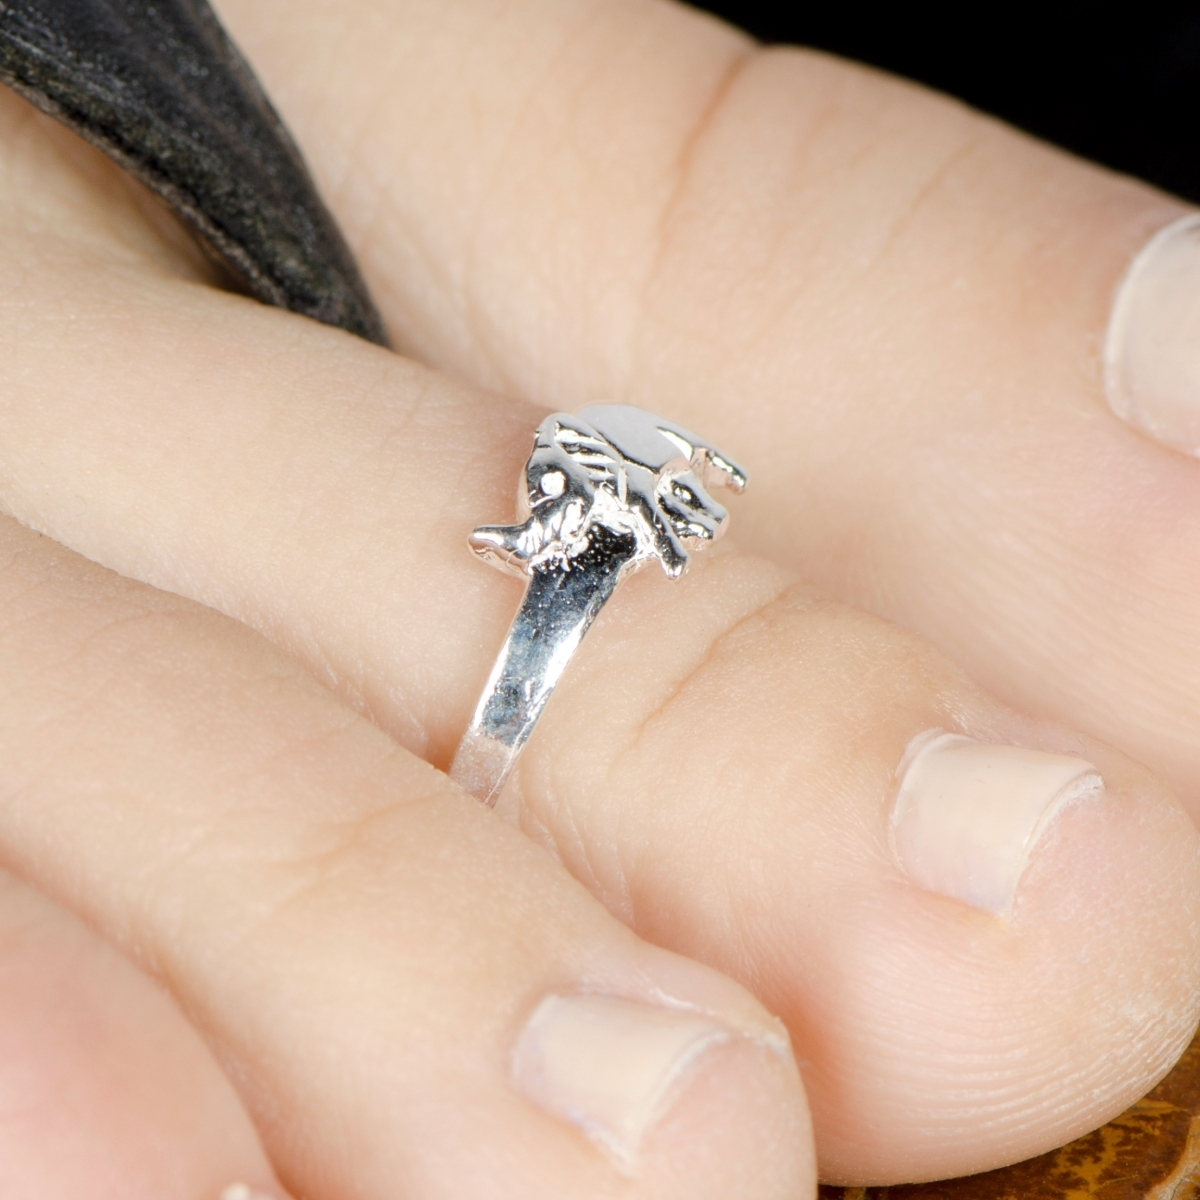 Quiet Wedding: Elephant Diamond Wedding Ring Intended For Current Elephant Toe Rings (Gallery 4 of 15)